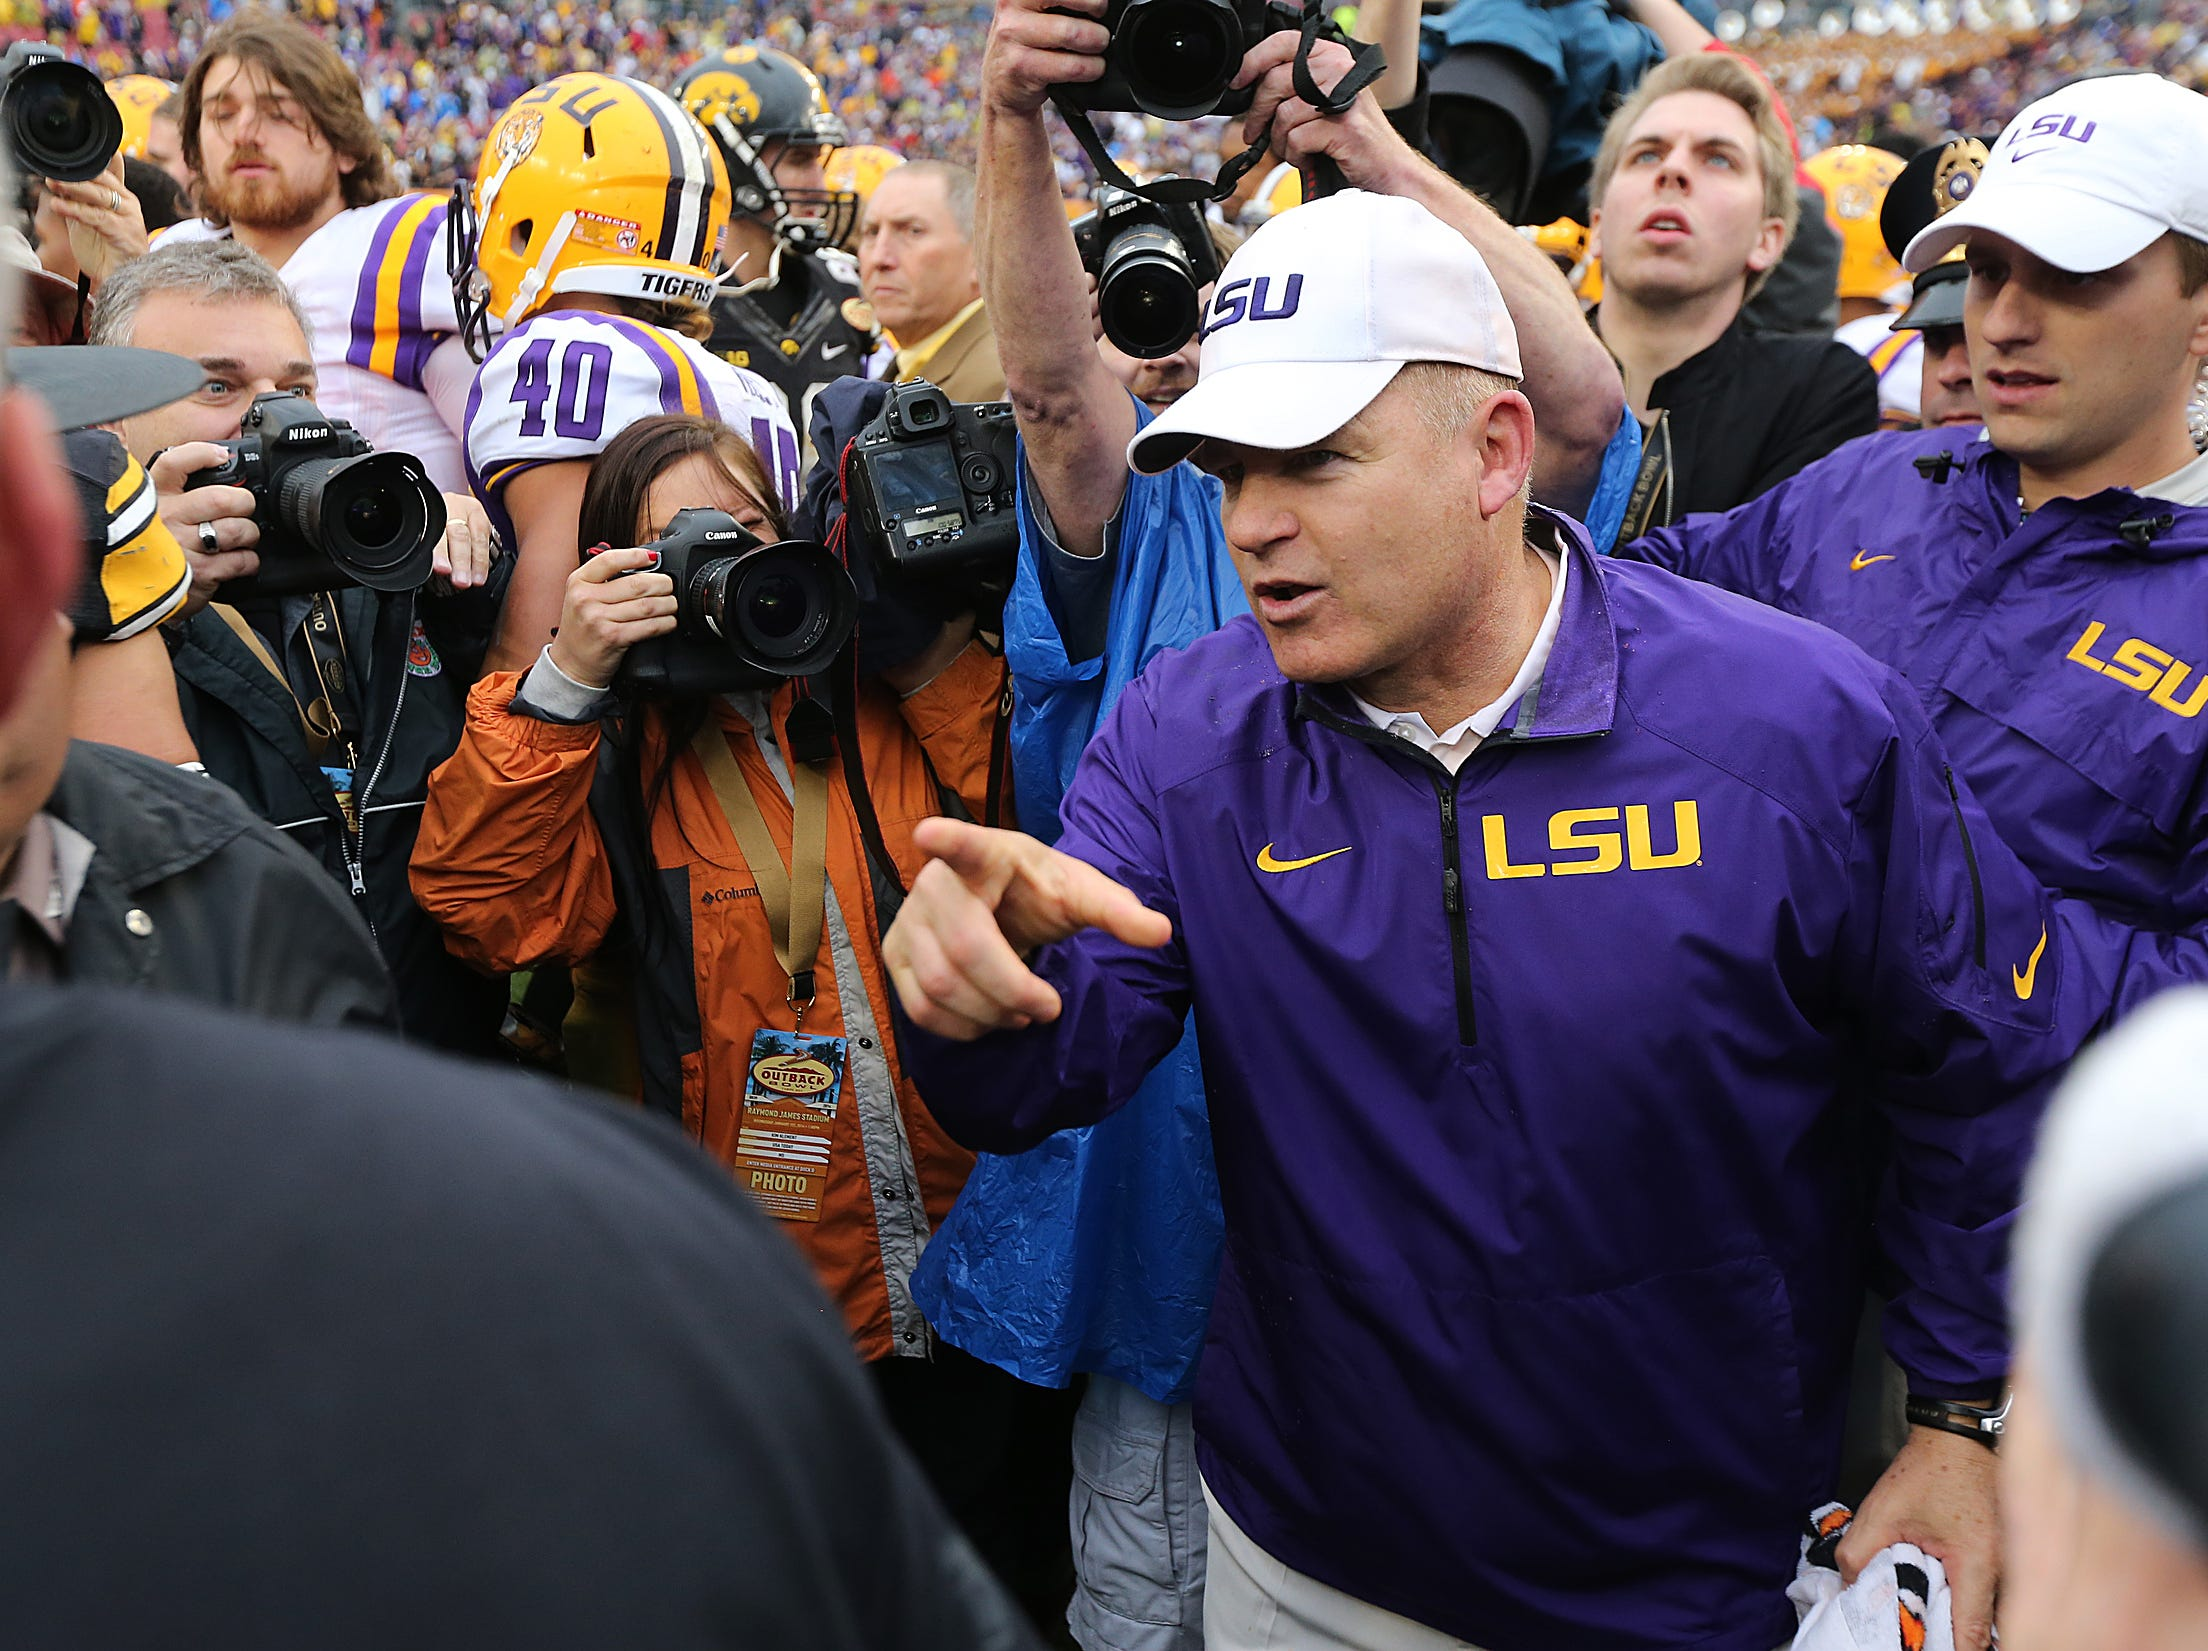 Louisiana State coach Les Miles meets with Iowa coach Kirk Ferentz following Miles and LSU's 21-14 win over the Hawkeyes on Wednesday, Jan. 1, 2014, in Tampa, Florida. (Bryon Houlgrave/The Register)